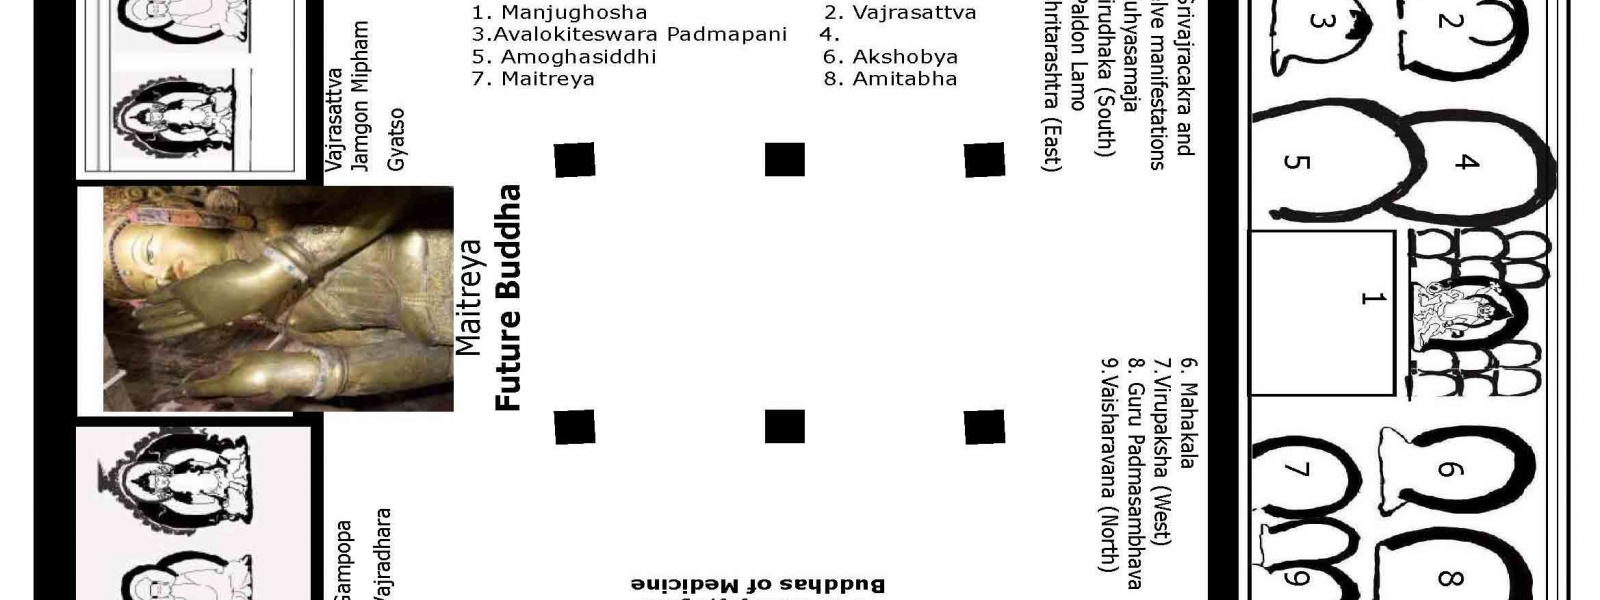 Fig. 1: Floor plan of Chamba Serzang with a schematic layout of the iconographic program. (Photo Courtesy: Sanjay Dhar)